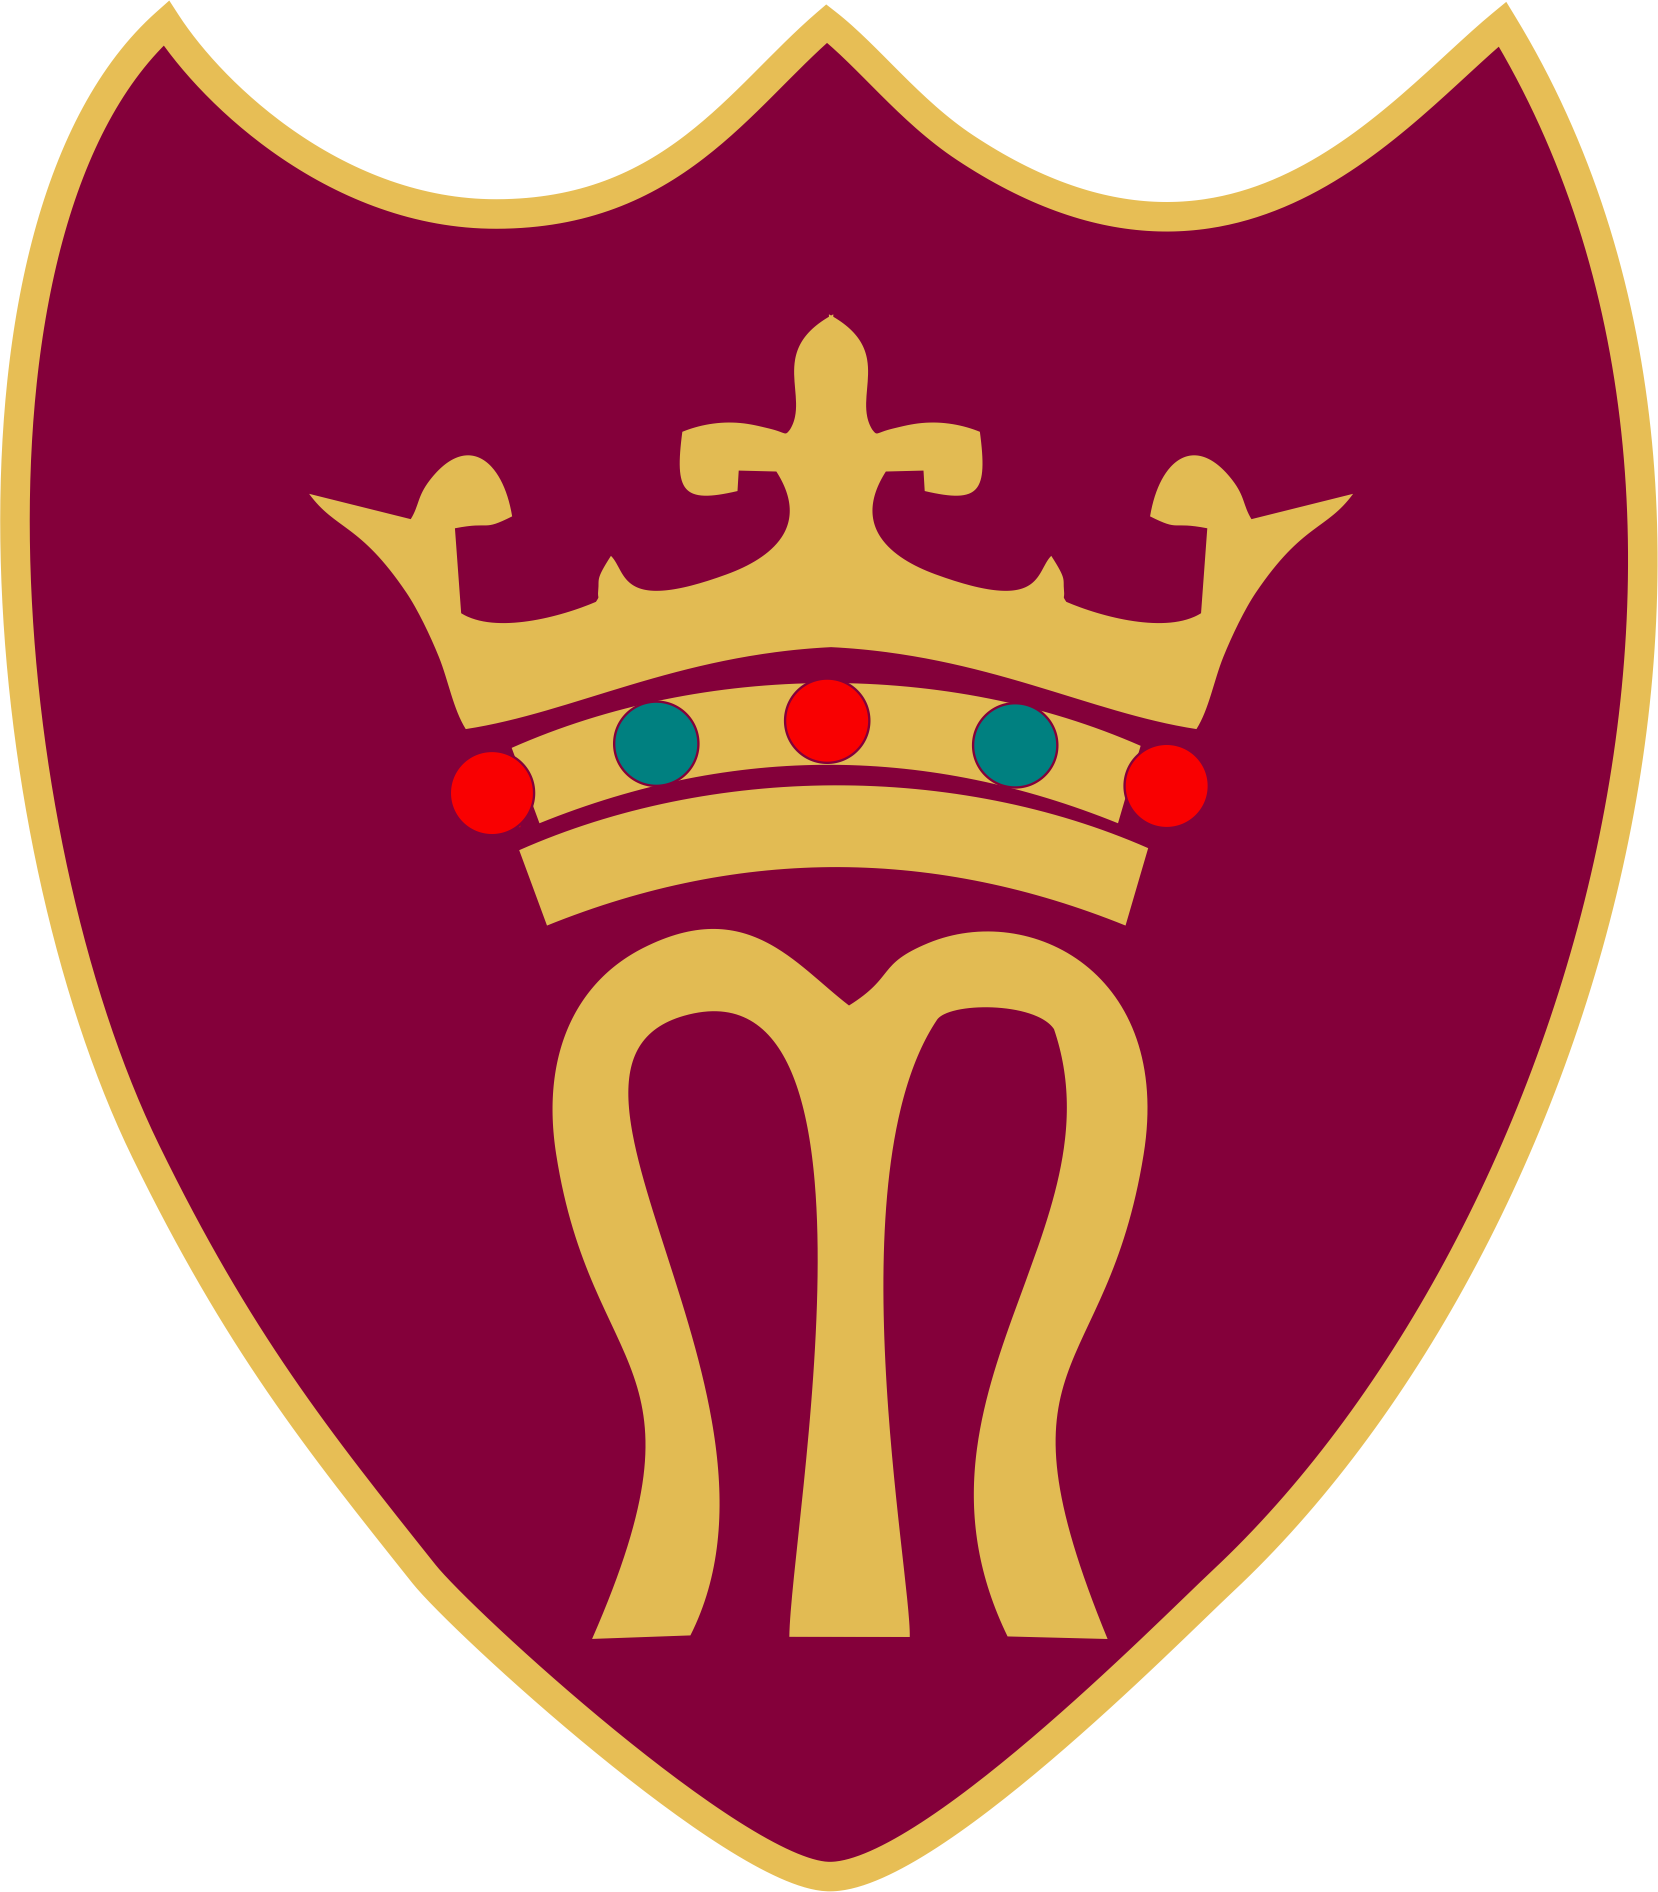 St marys badge.png